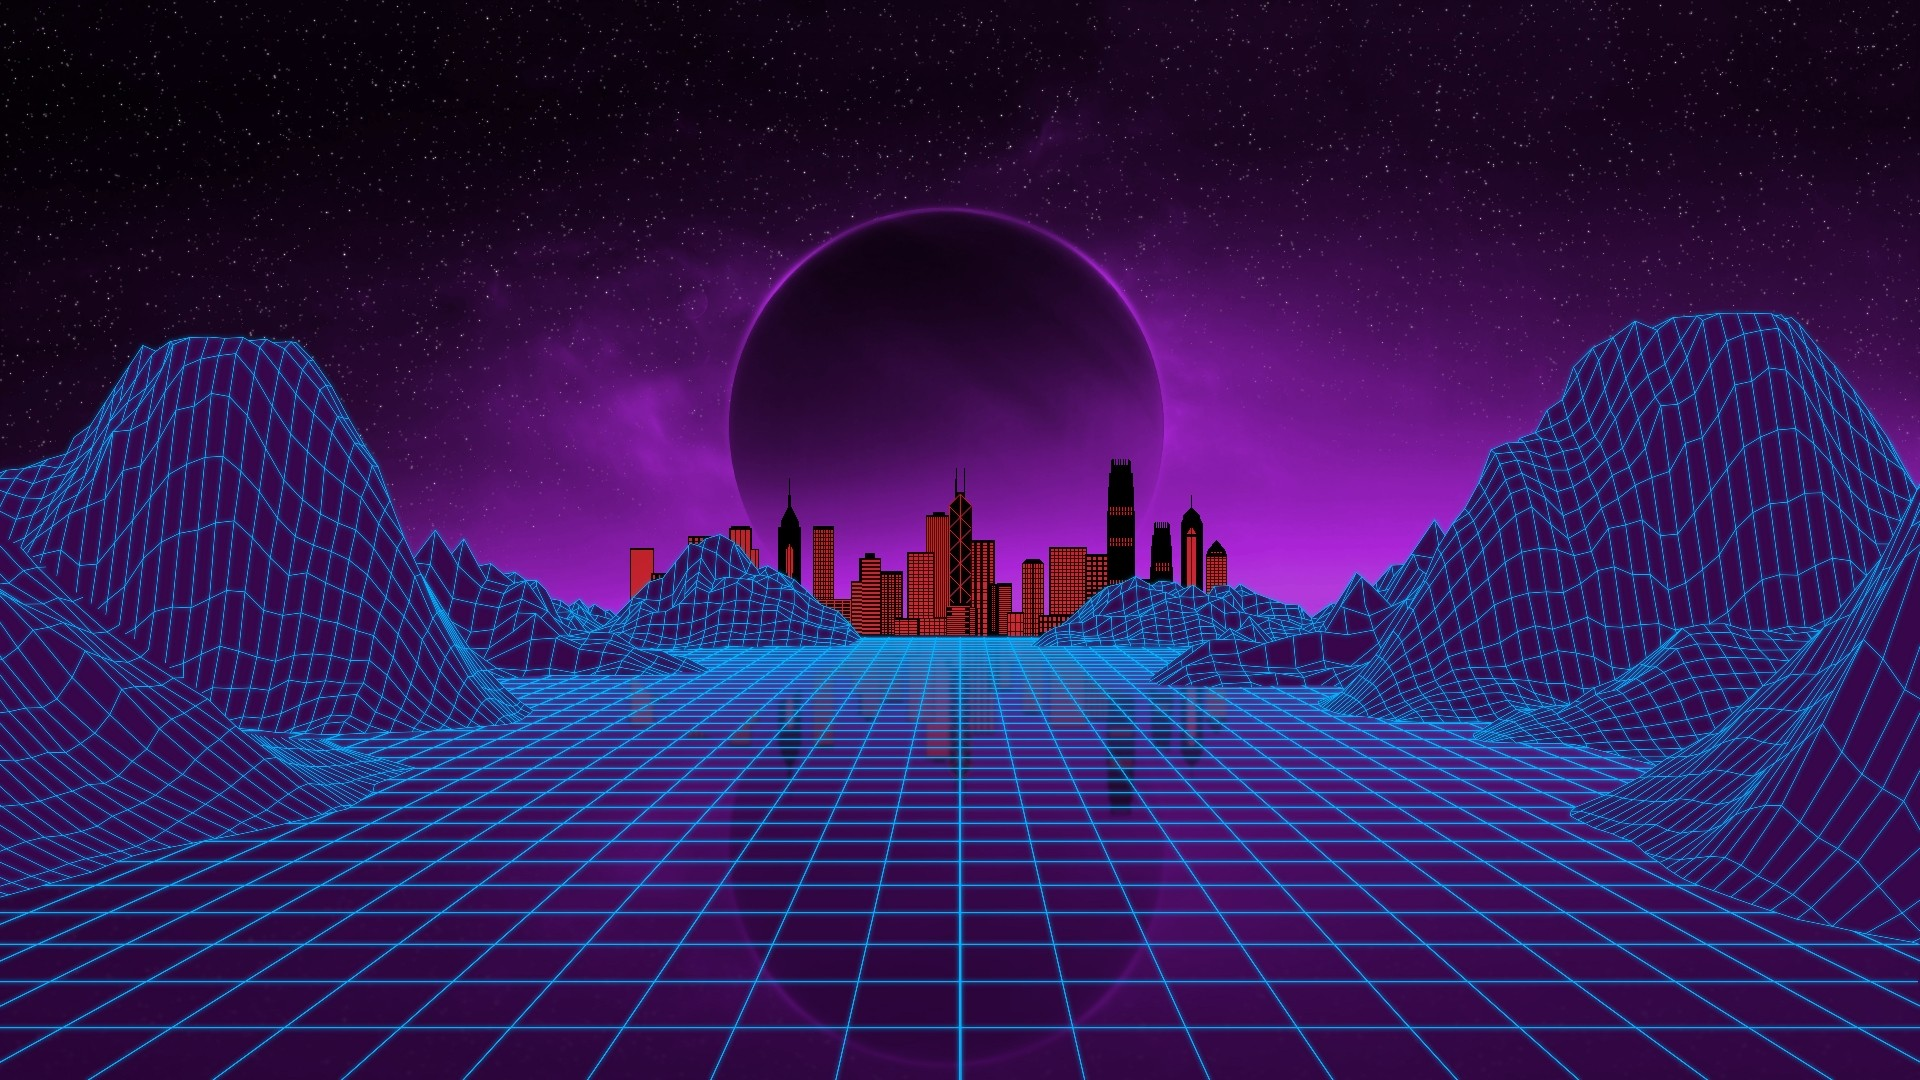 1920x1080 iphone wallpapers: Synthwave Wallpaper ·① Download Free High Resolution